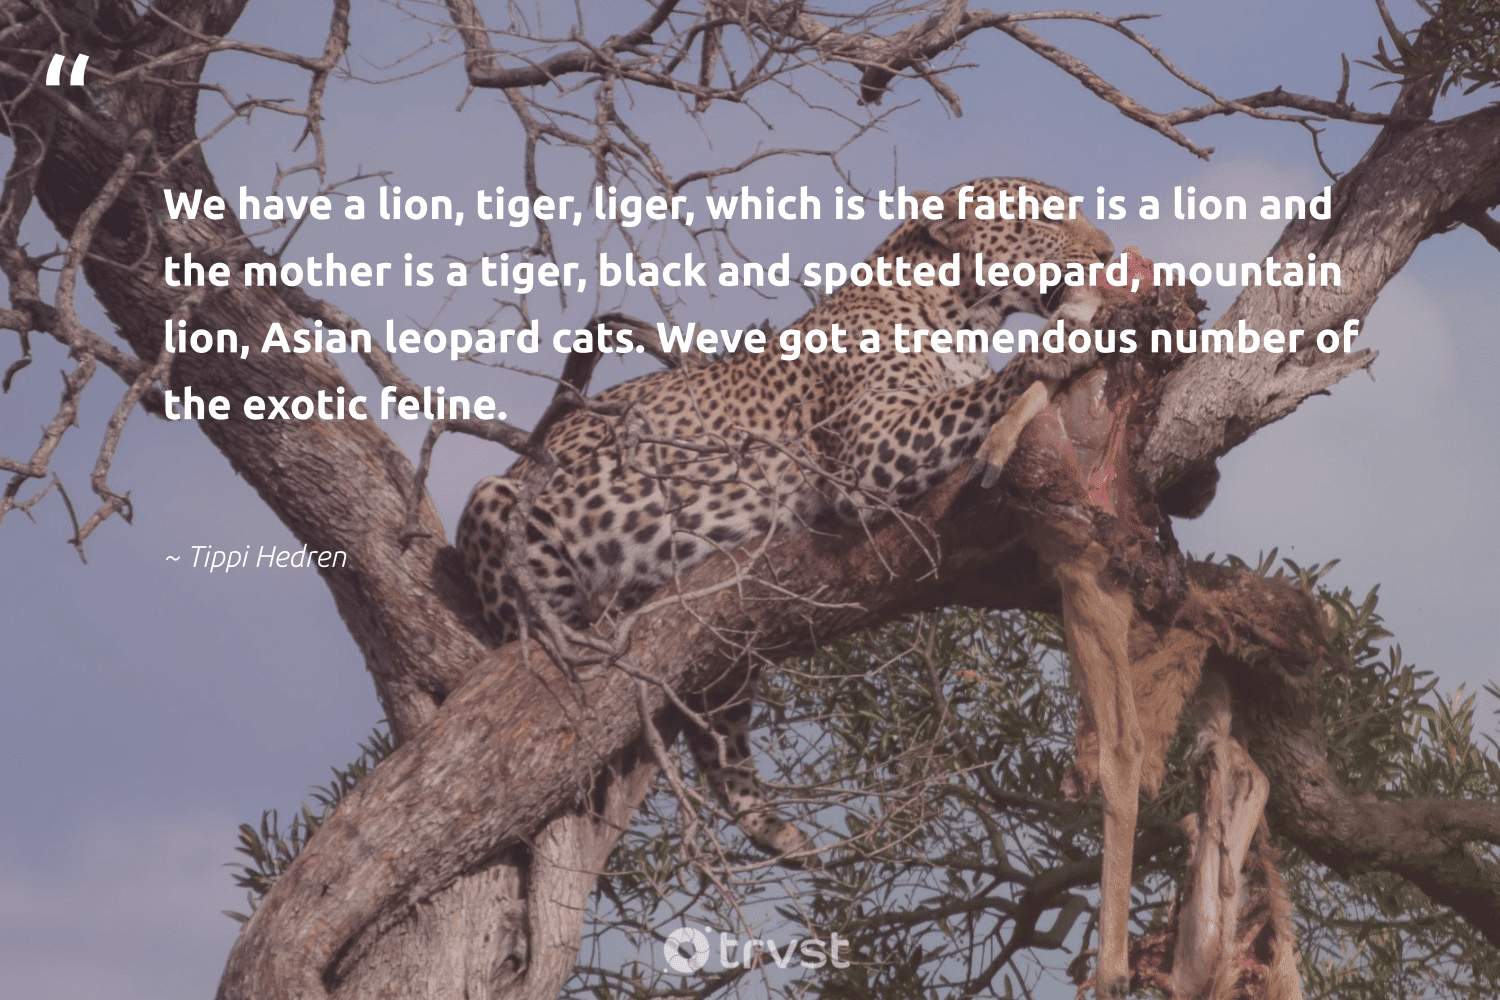 """""""We have a lion, tiger, liger, which is the father is a lion and the mother is a tiger, black and spotted leopard, mountain lion, Asian leopard cats. Weve got a tremendous number of the exotic feline.""""  - Tippi Hedren #trvst #quotes #mountain #tiger #leopard #protectnature #collectiveaction #conservation #bethechange #majesticwildlife #thinkgreen #leopards"""